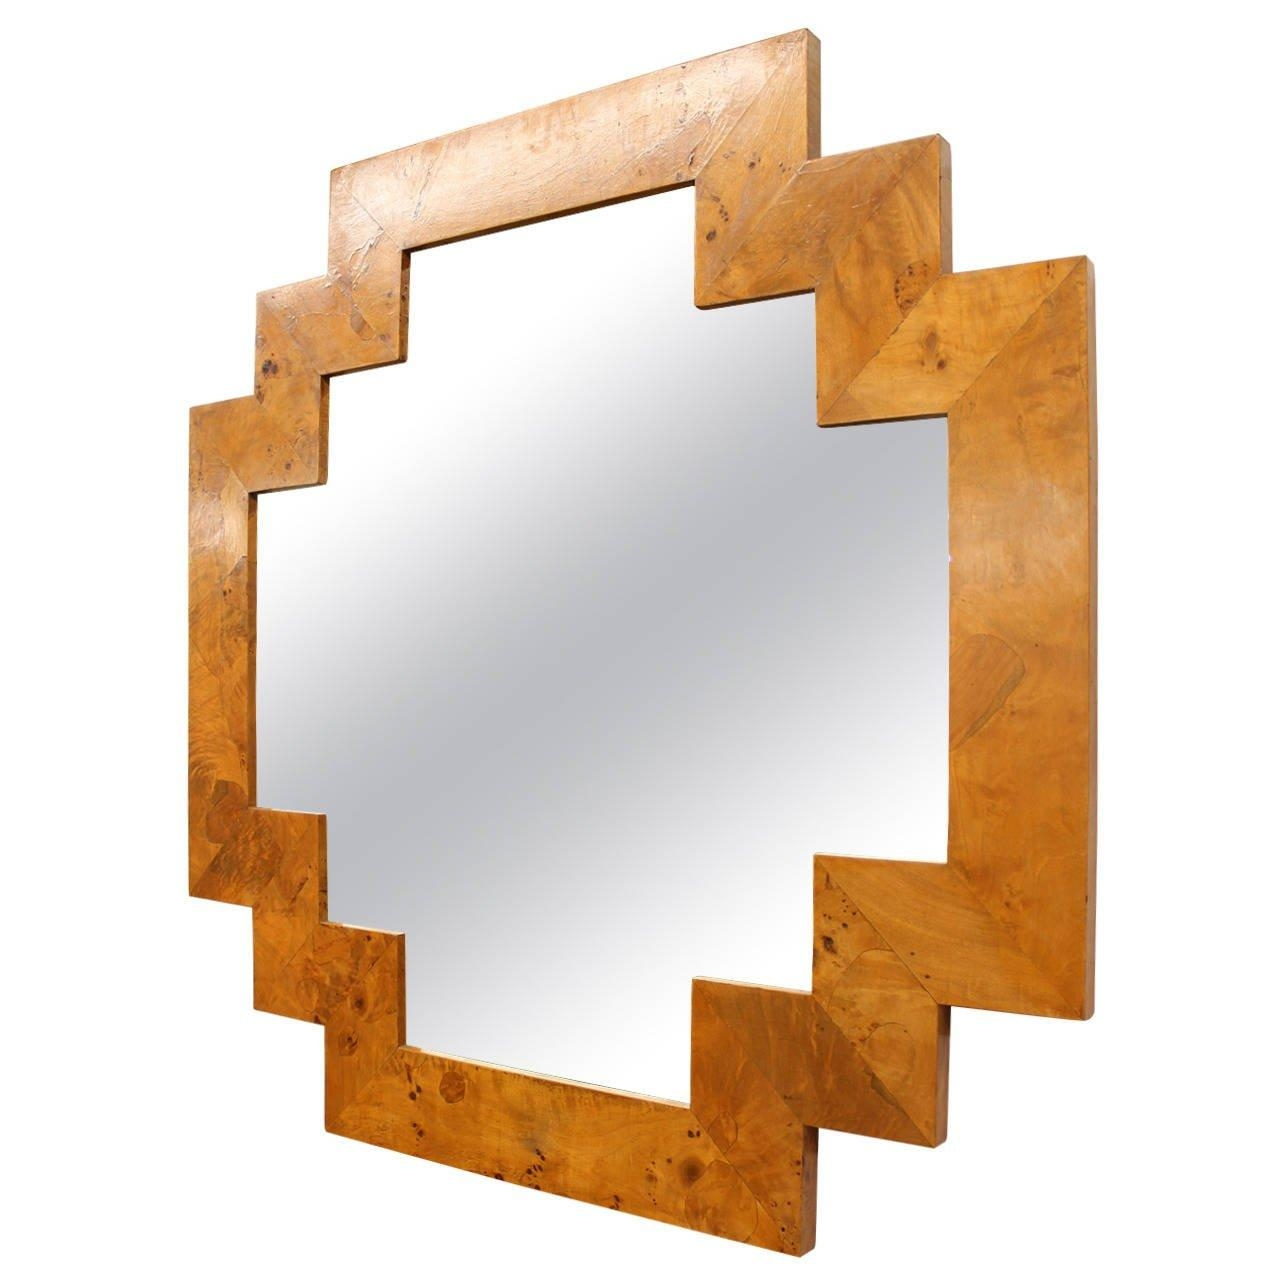 Art Deco Style Geometric Italian Burl Wood Wall Mirror At 1Stdibs Intended For Art Deco Wall Mirrors (View 19 of 20)